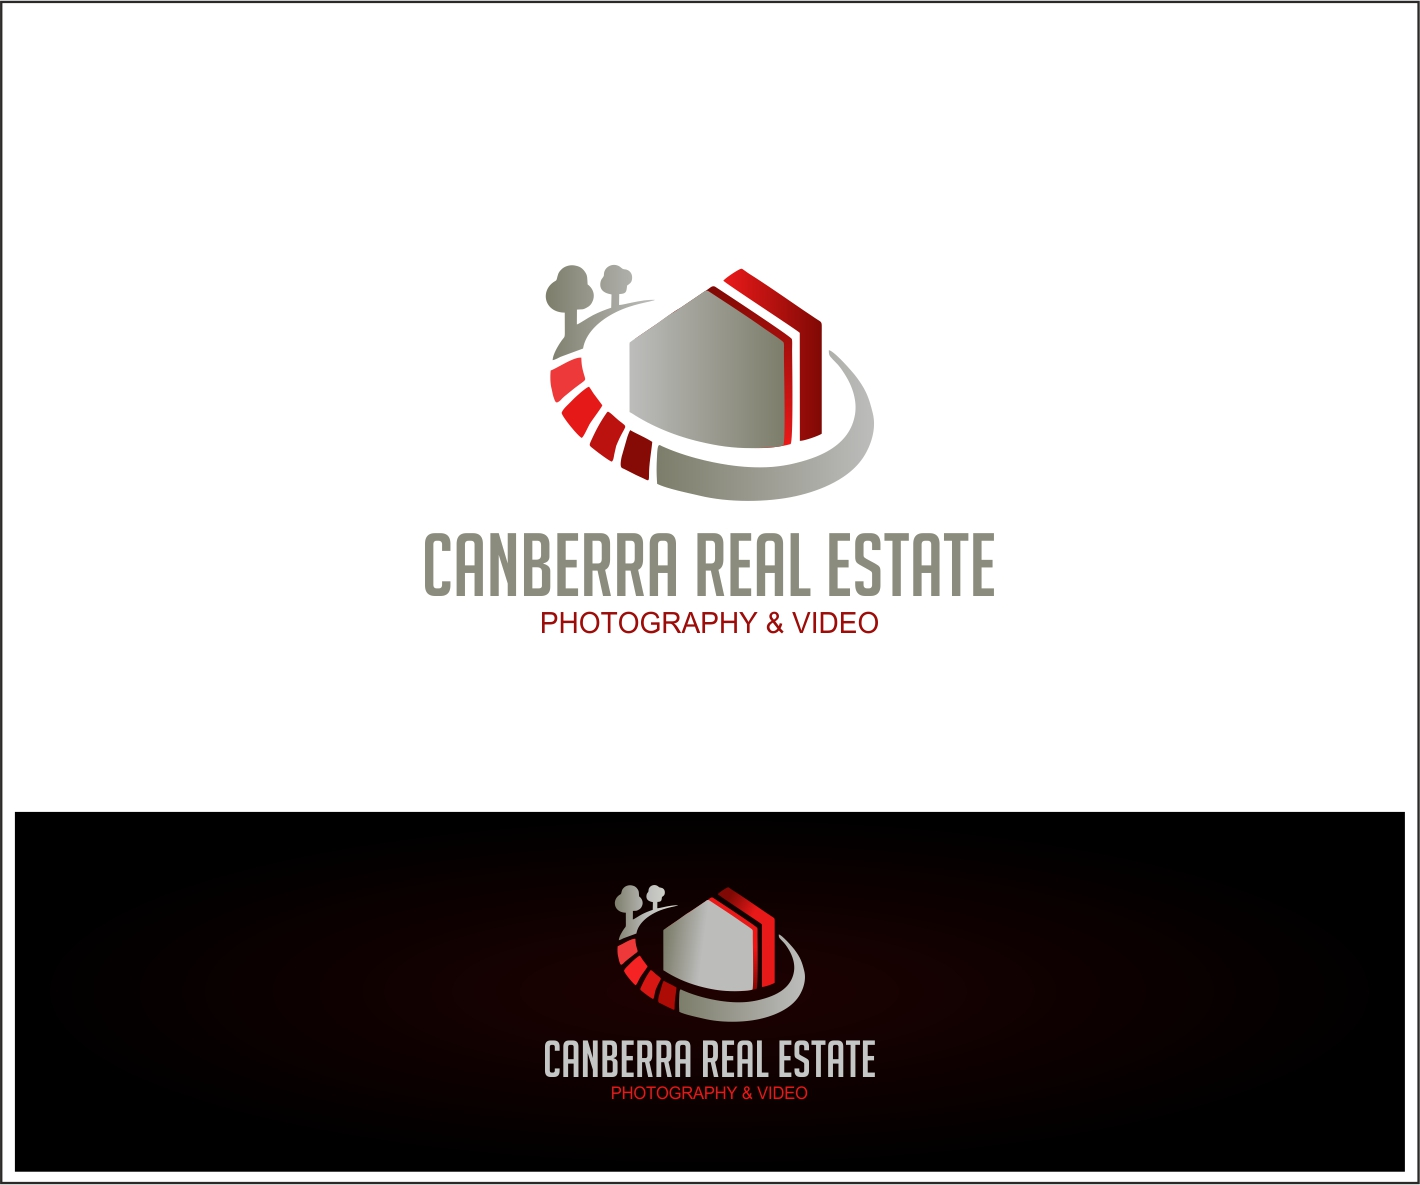 Logo Design by Private User - Entry No. 35 in the Logo Design Contest Creative Logo Design for Canberra Real Estate Photography & Video Pty Ltd.